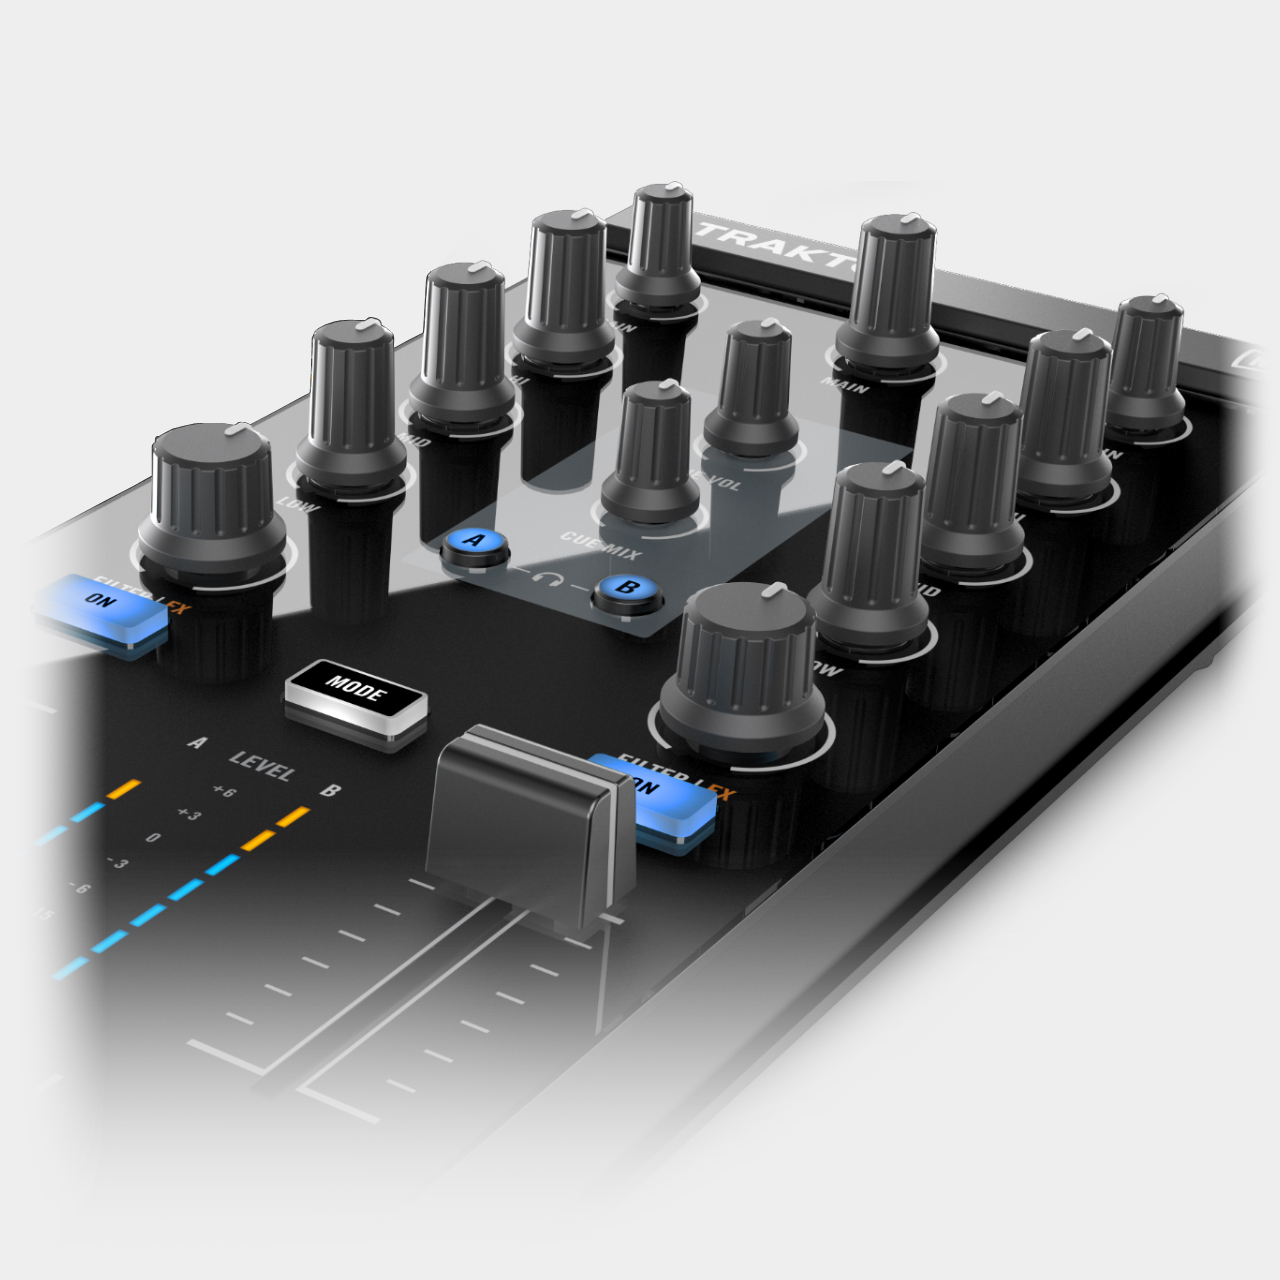 Native Instruments Traktor Kontrol Z1 / EQs, Filter und Cue-Sektion